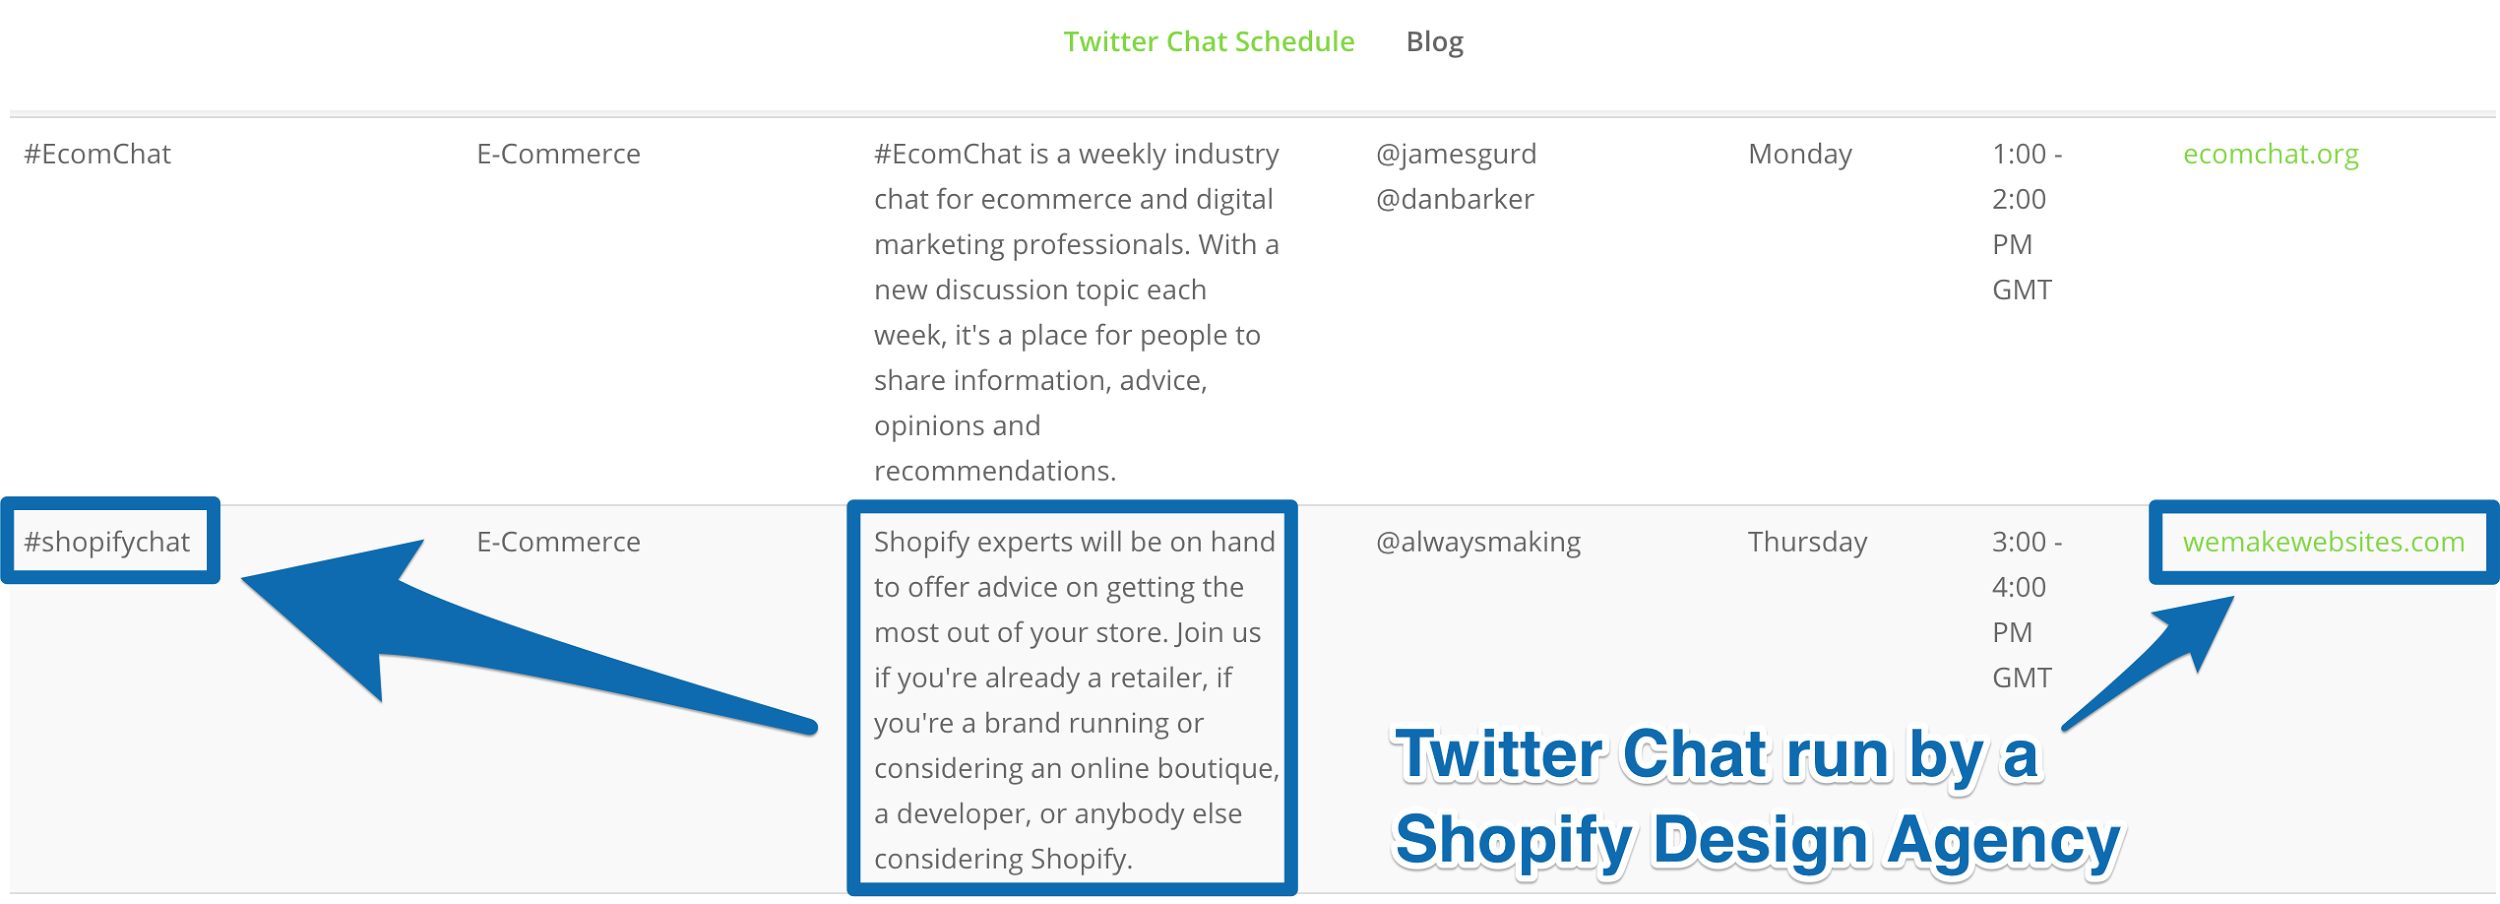 Screenshot showing how Spotify utilizes Twitter chat